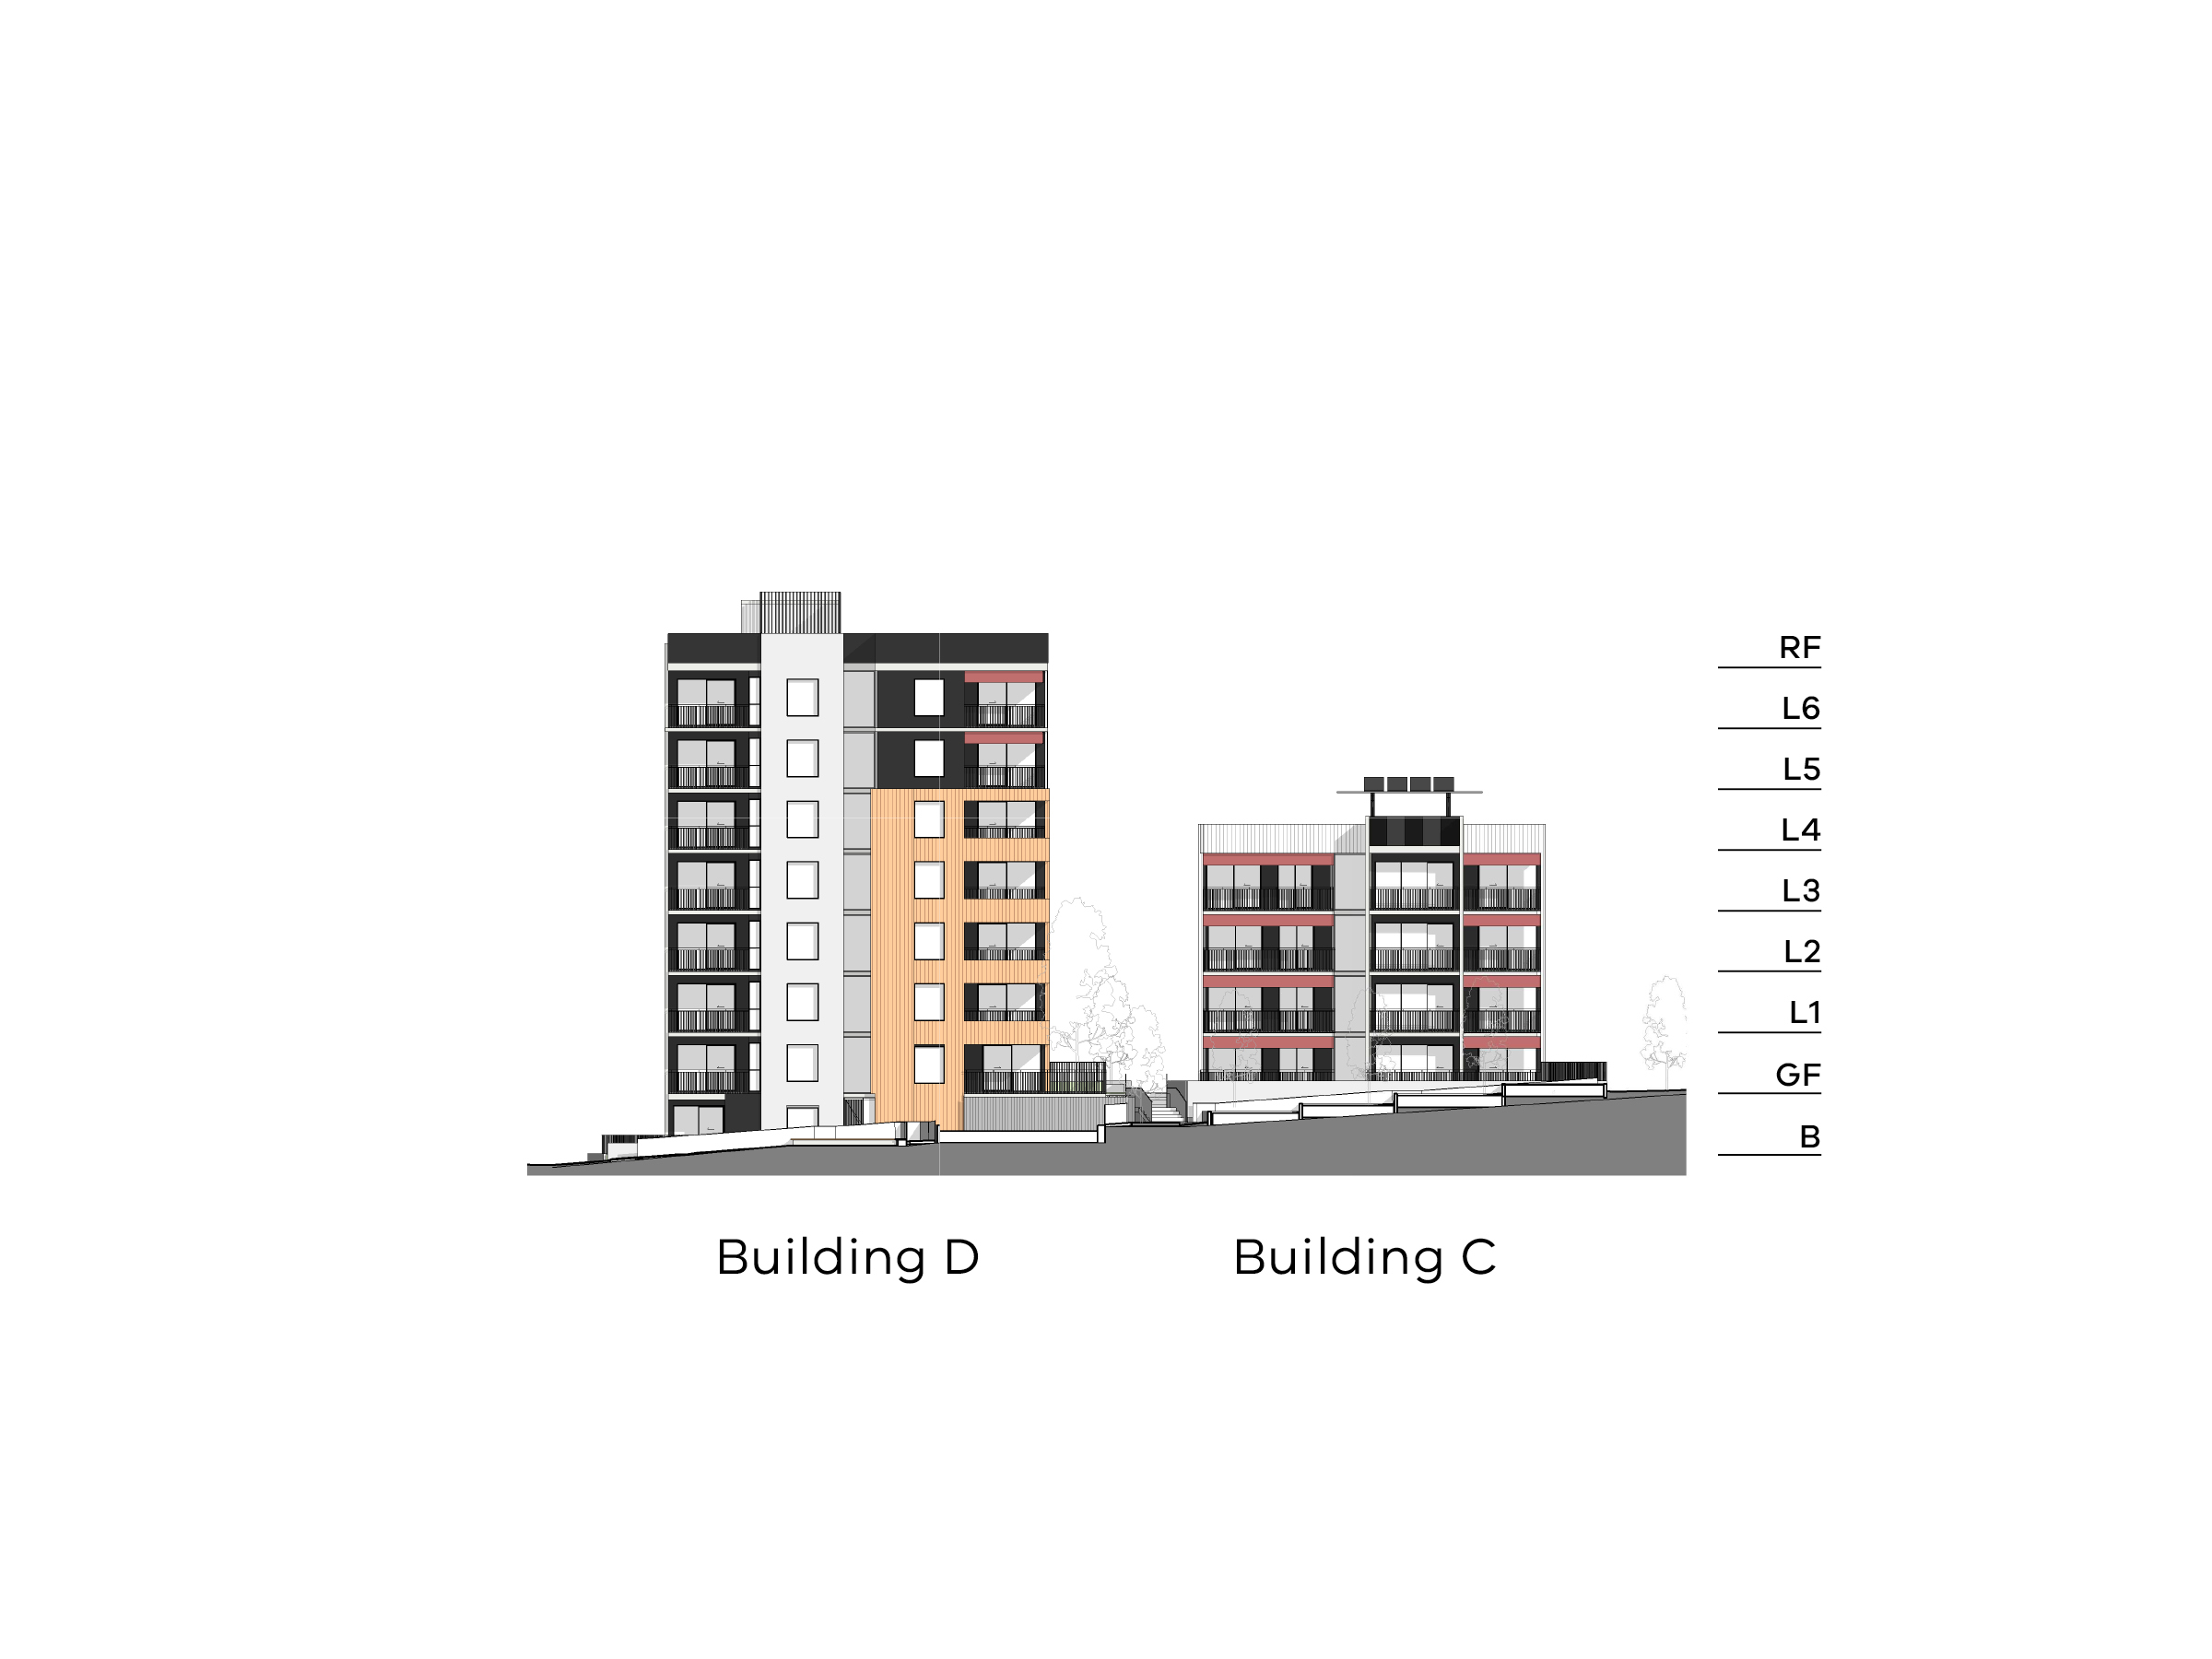 Diagram showing the heights of buildings C and D as seen from Hill Street. Building C has a basement, ground floor, level 1-4 and a flat roof. Building D has a basement, ground floor, level 1-6 and a flat roof.